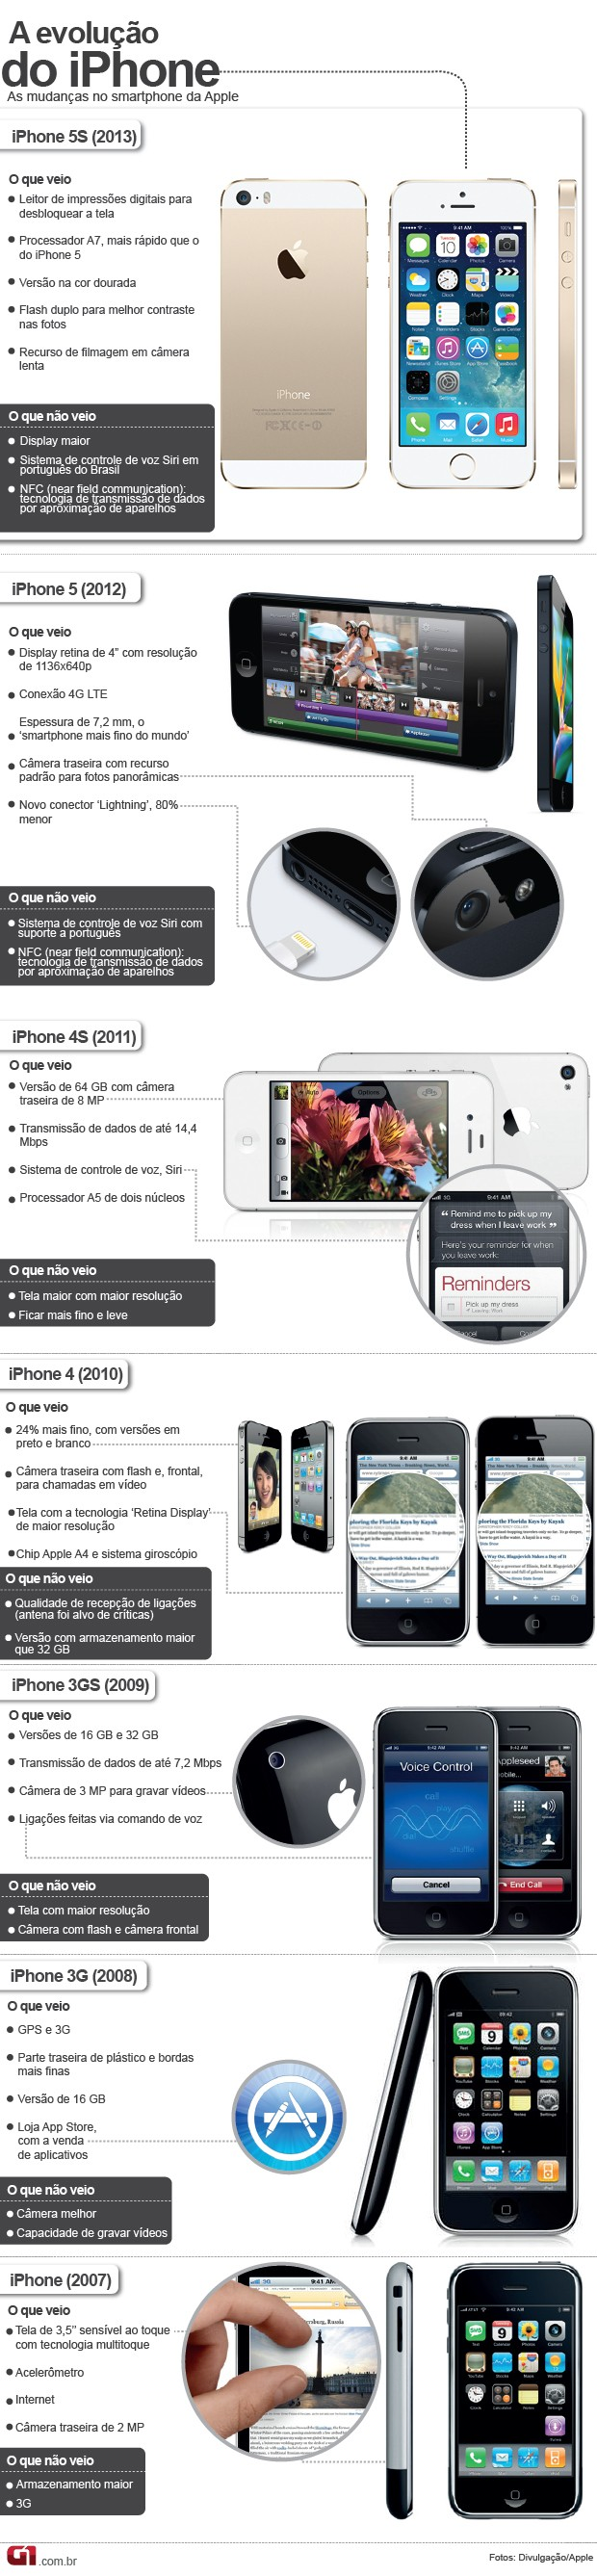 eVOLUÇÃO DO IpHONE 2013 (Foto: Arte G1)